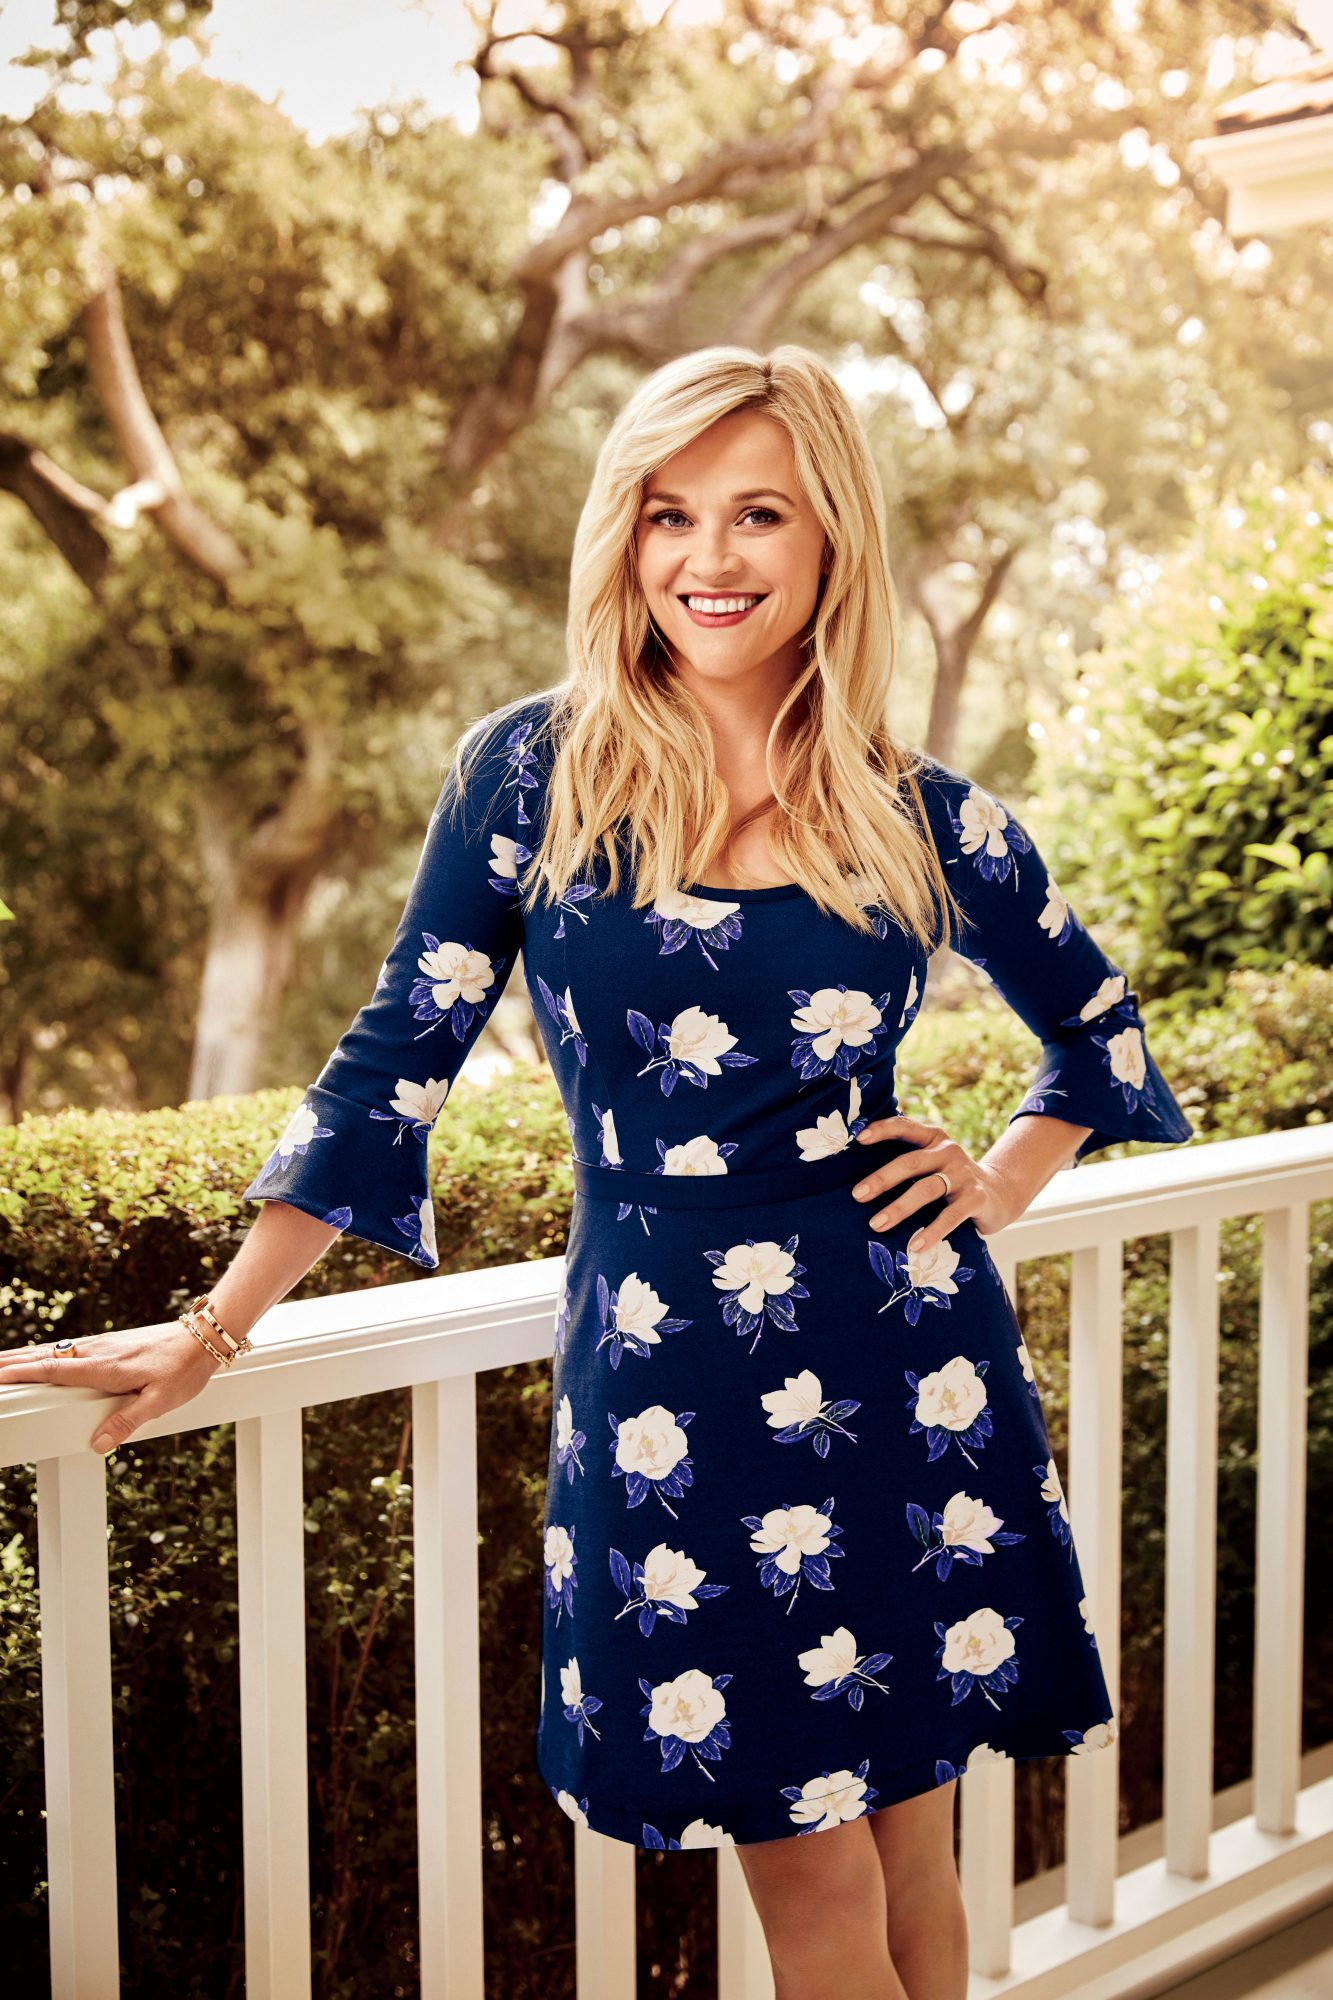 Reese Witherspoon in the Southern Living Dress